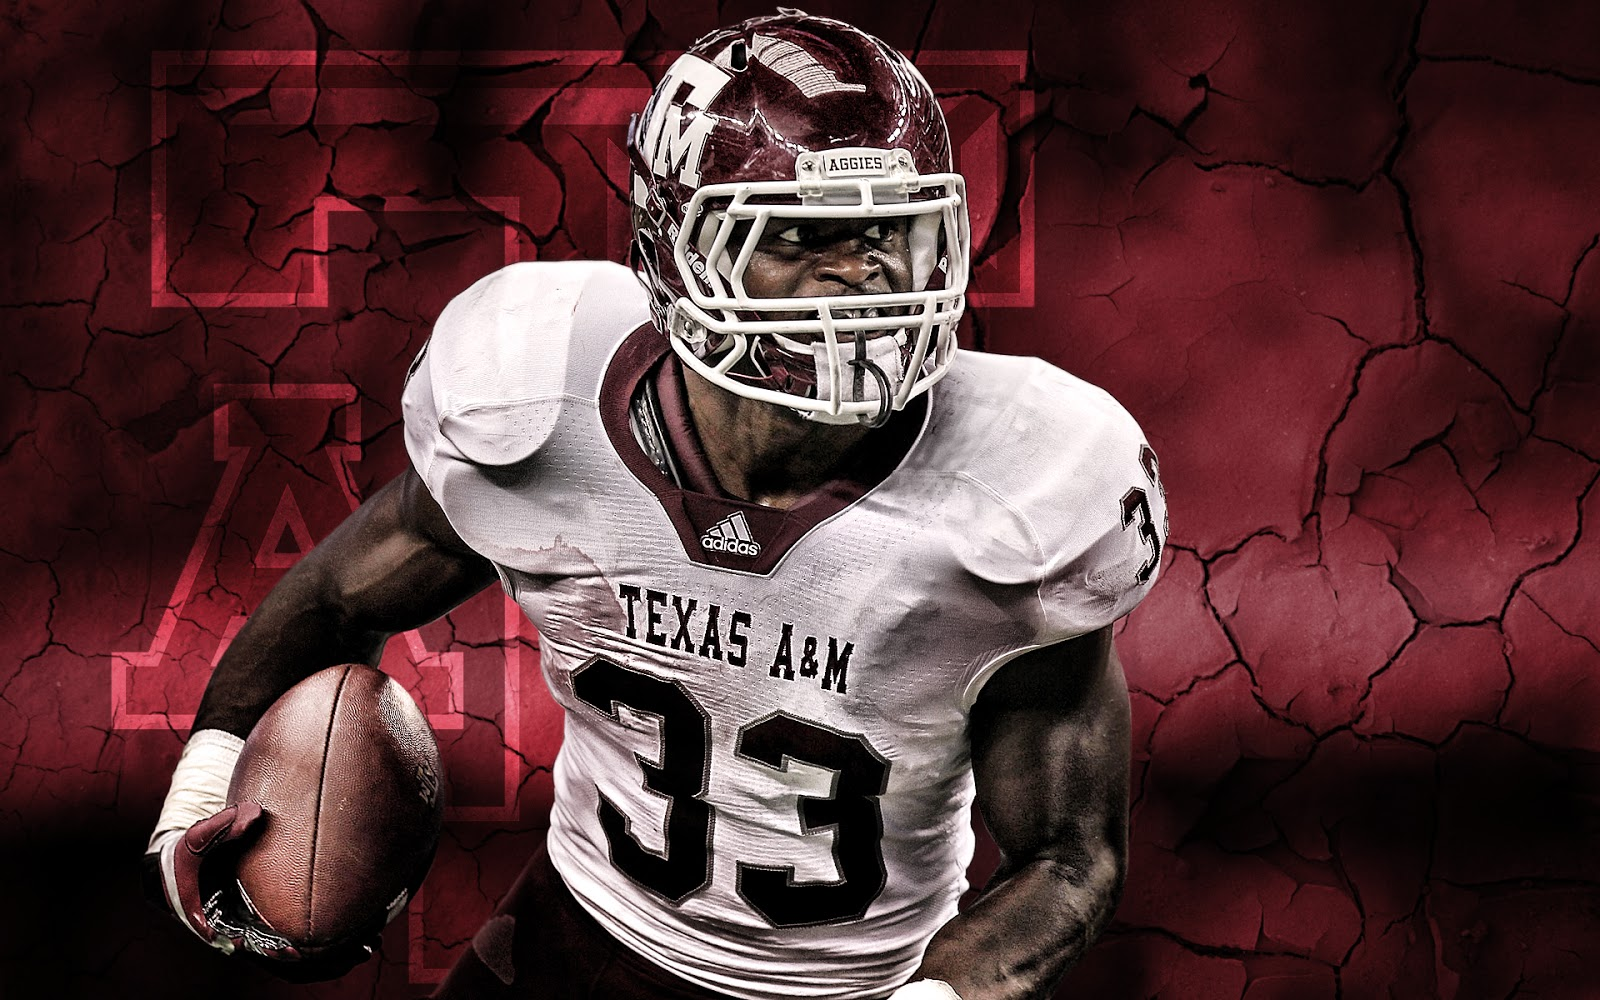 Below is another wallpaper created from the Arkansas game Texas AM 1600x1000